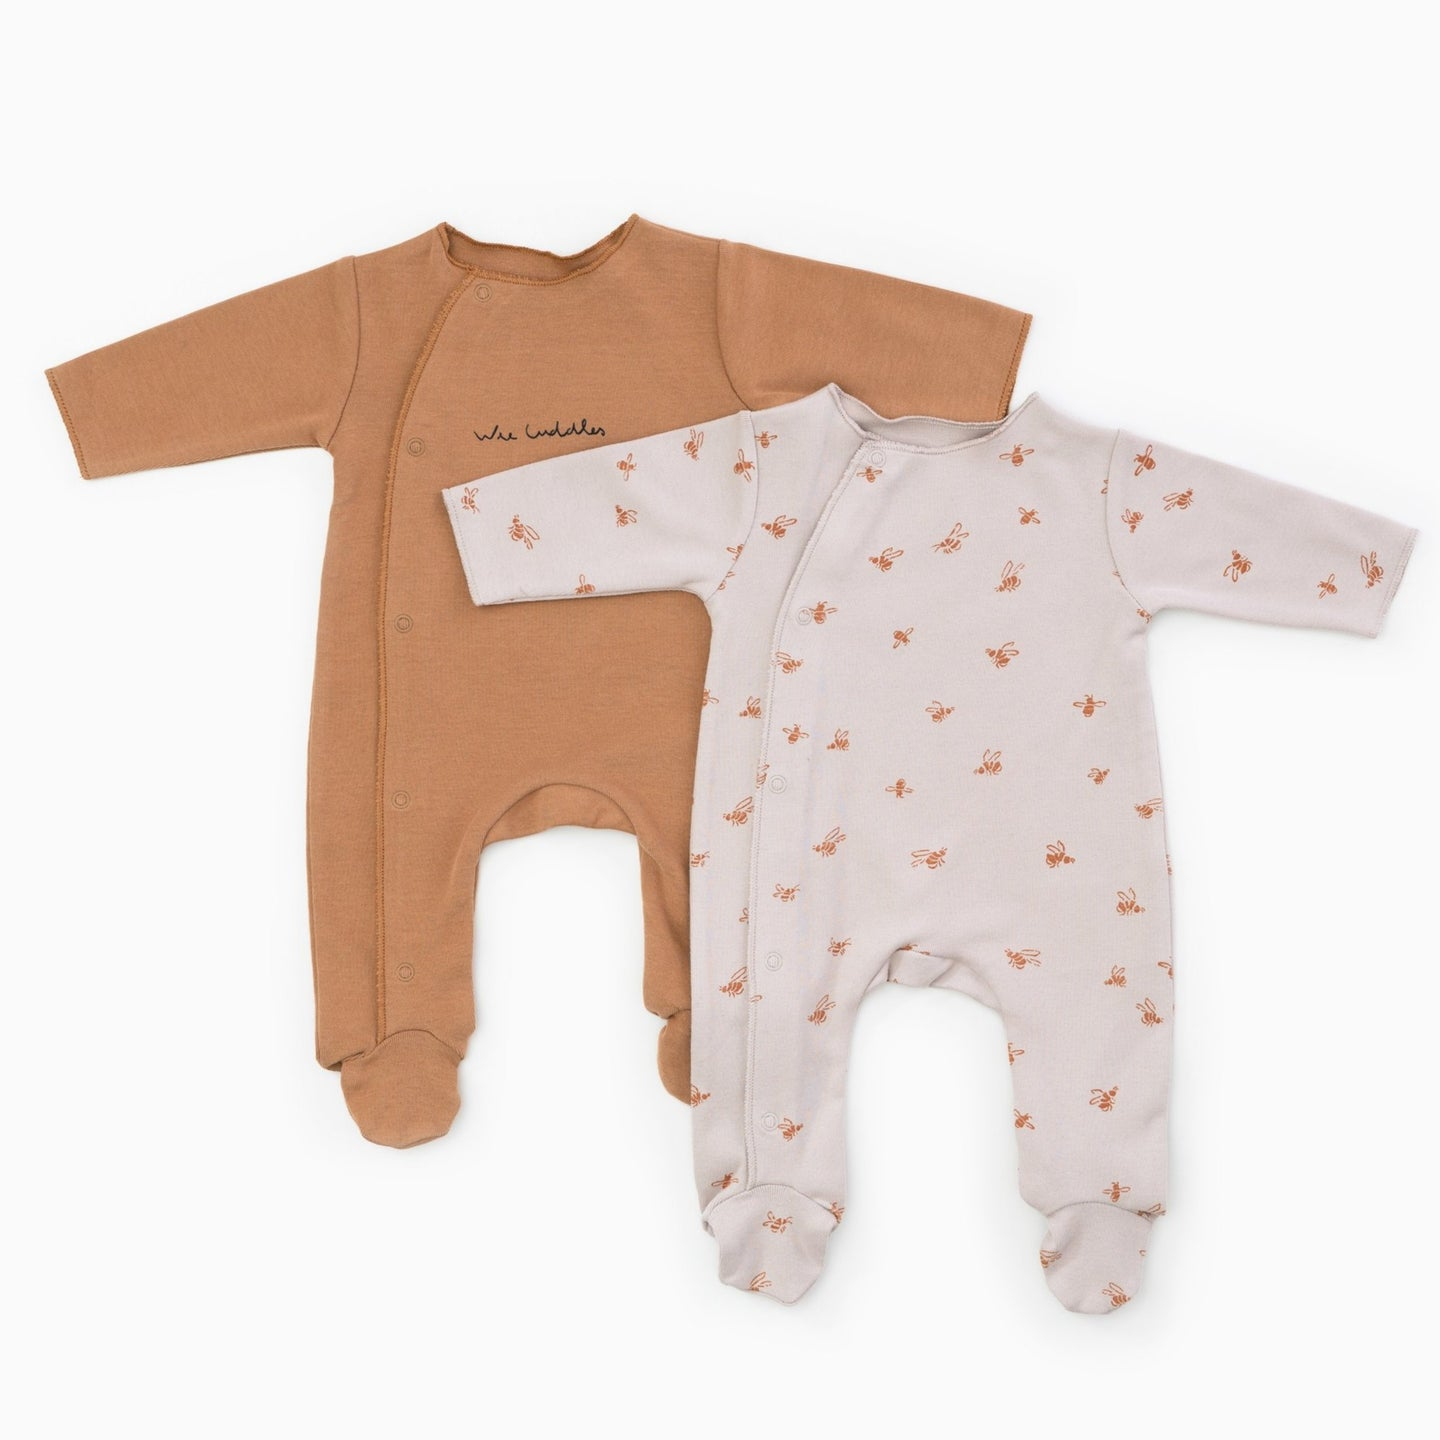 PLAY UP Babygrow-Set gerippt mit Bienen Print Organic Cotton